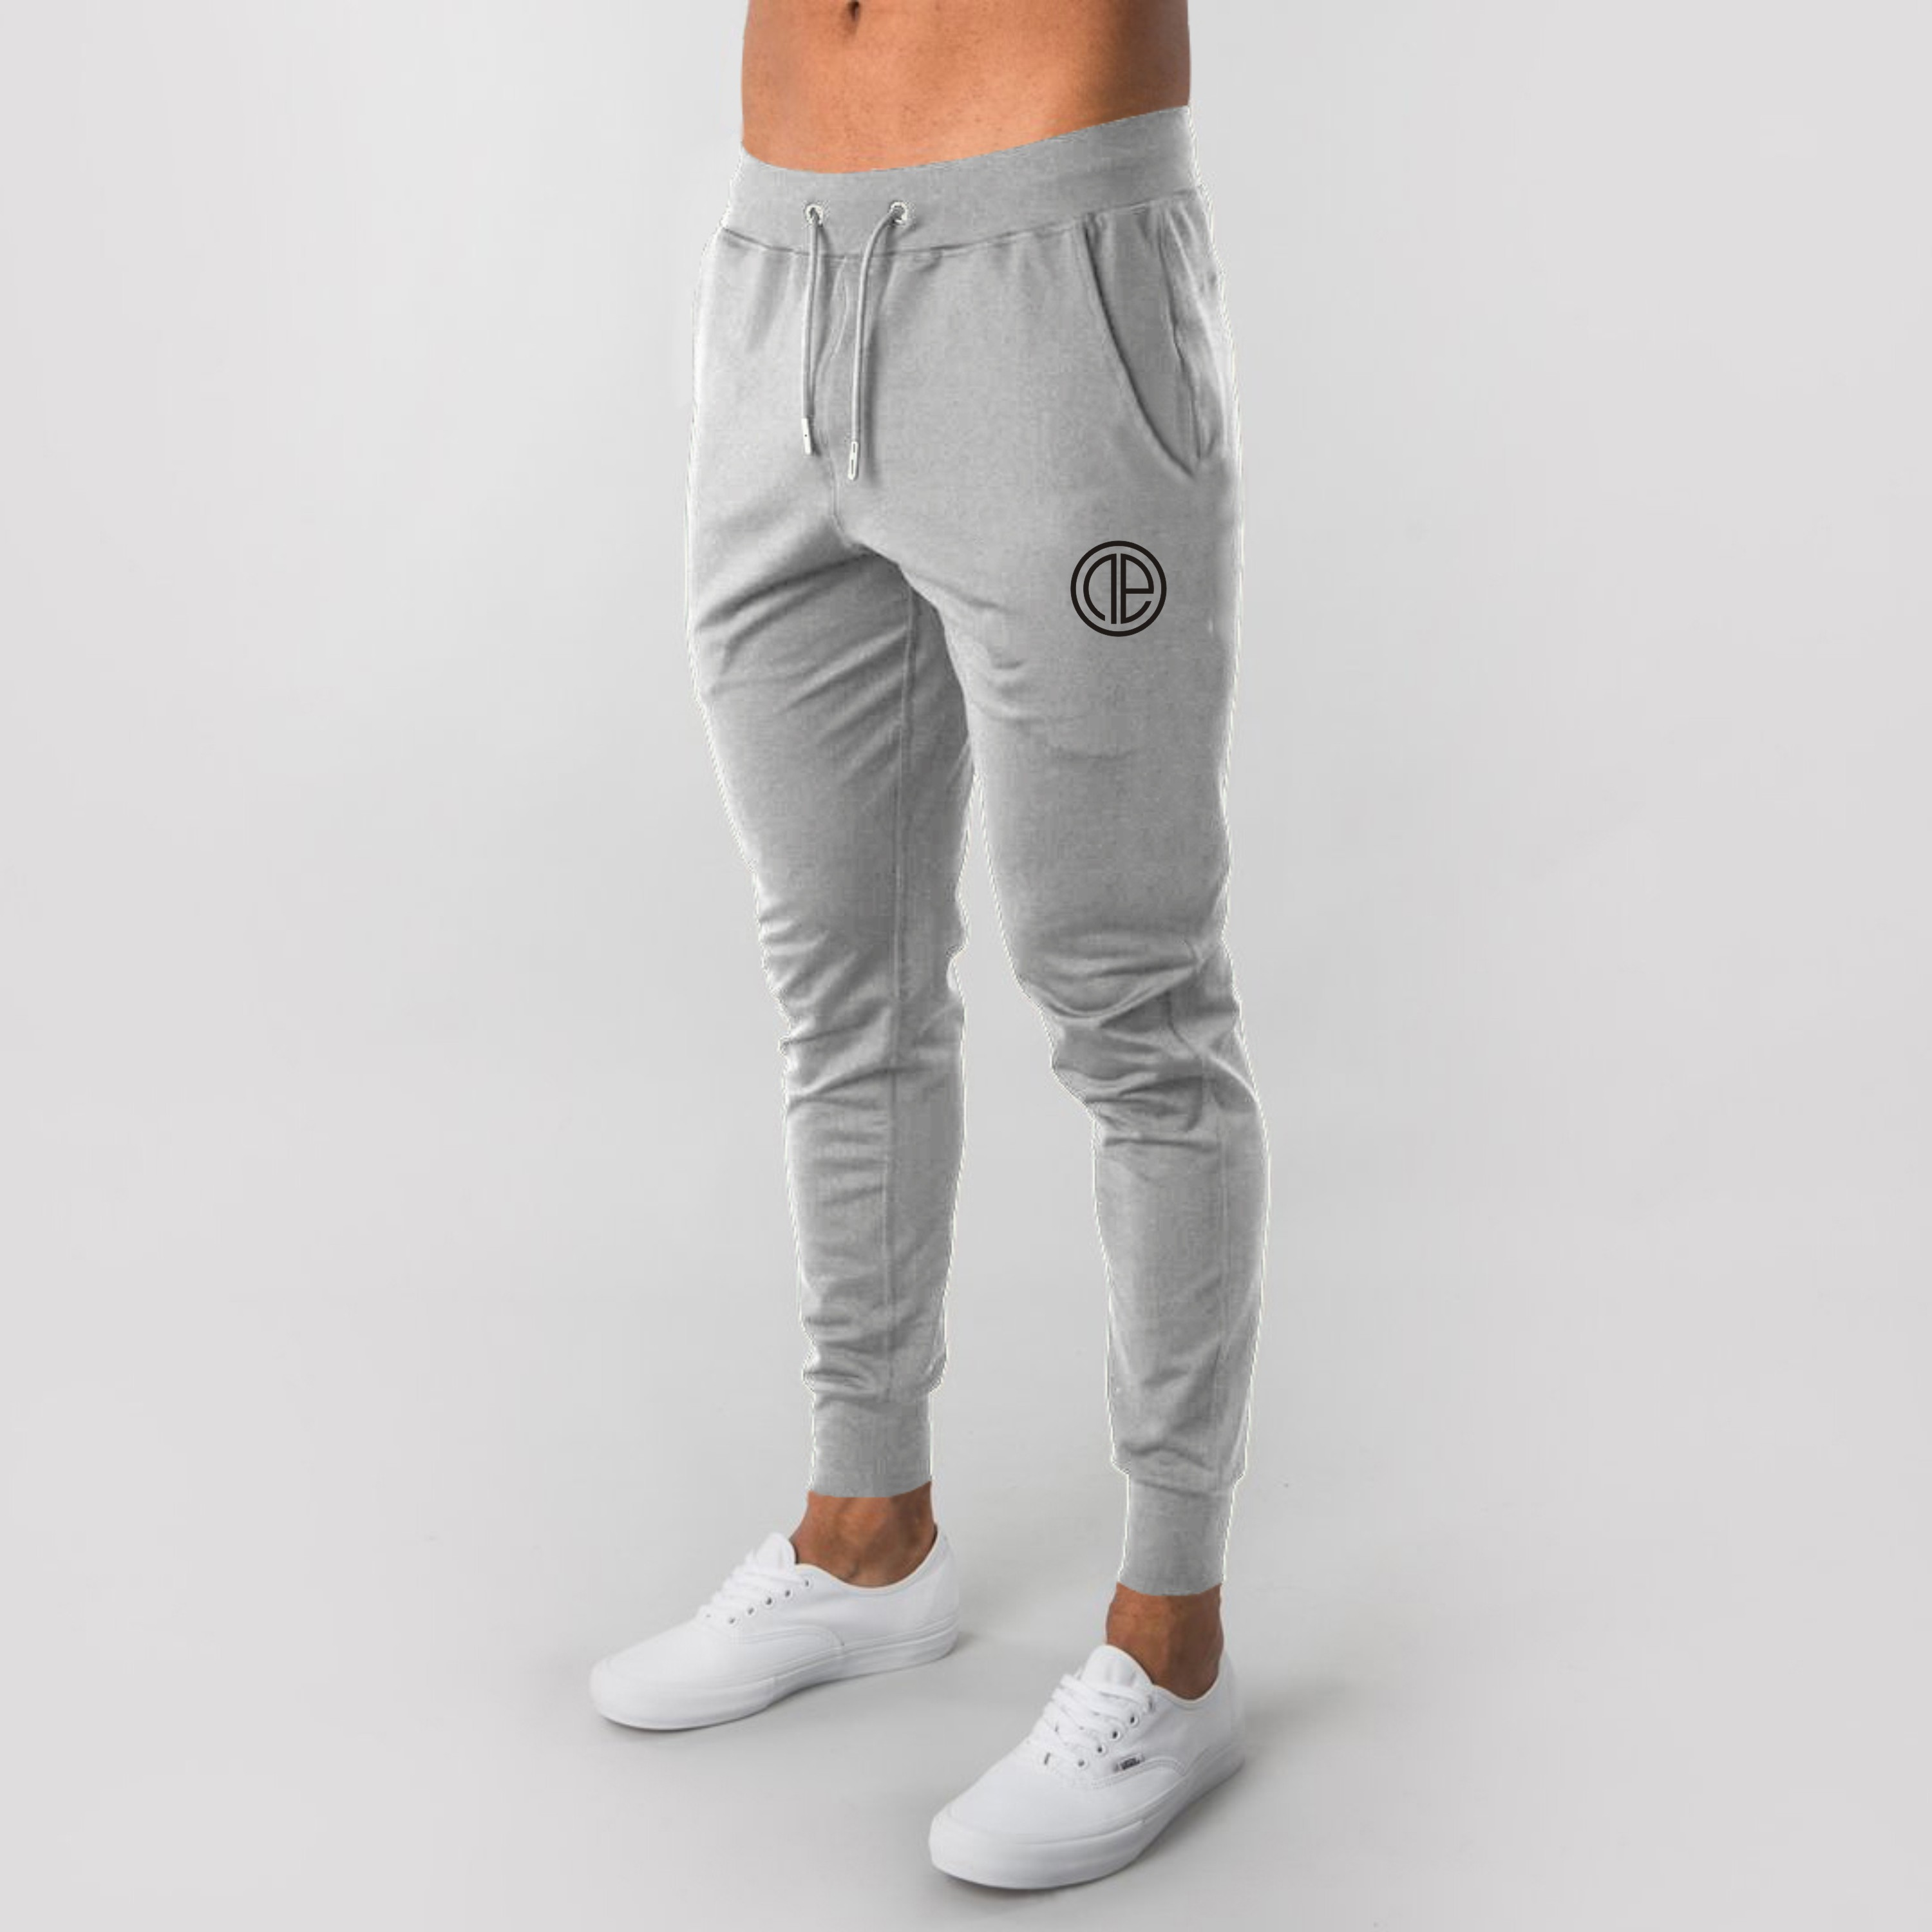 Fashion Men's Solid High-waist Lace-up Pencil Summer Pants Male Casual Workout Slim Fit Sport Gym Skinny Joggers Pants M-XXL